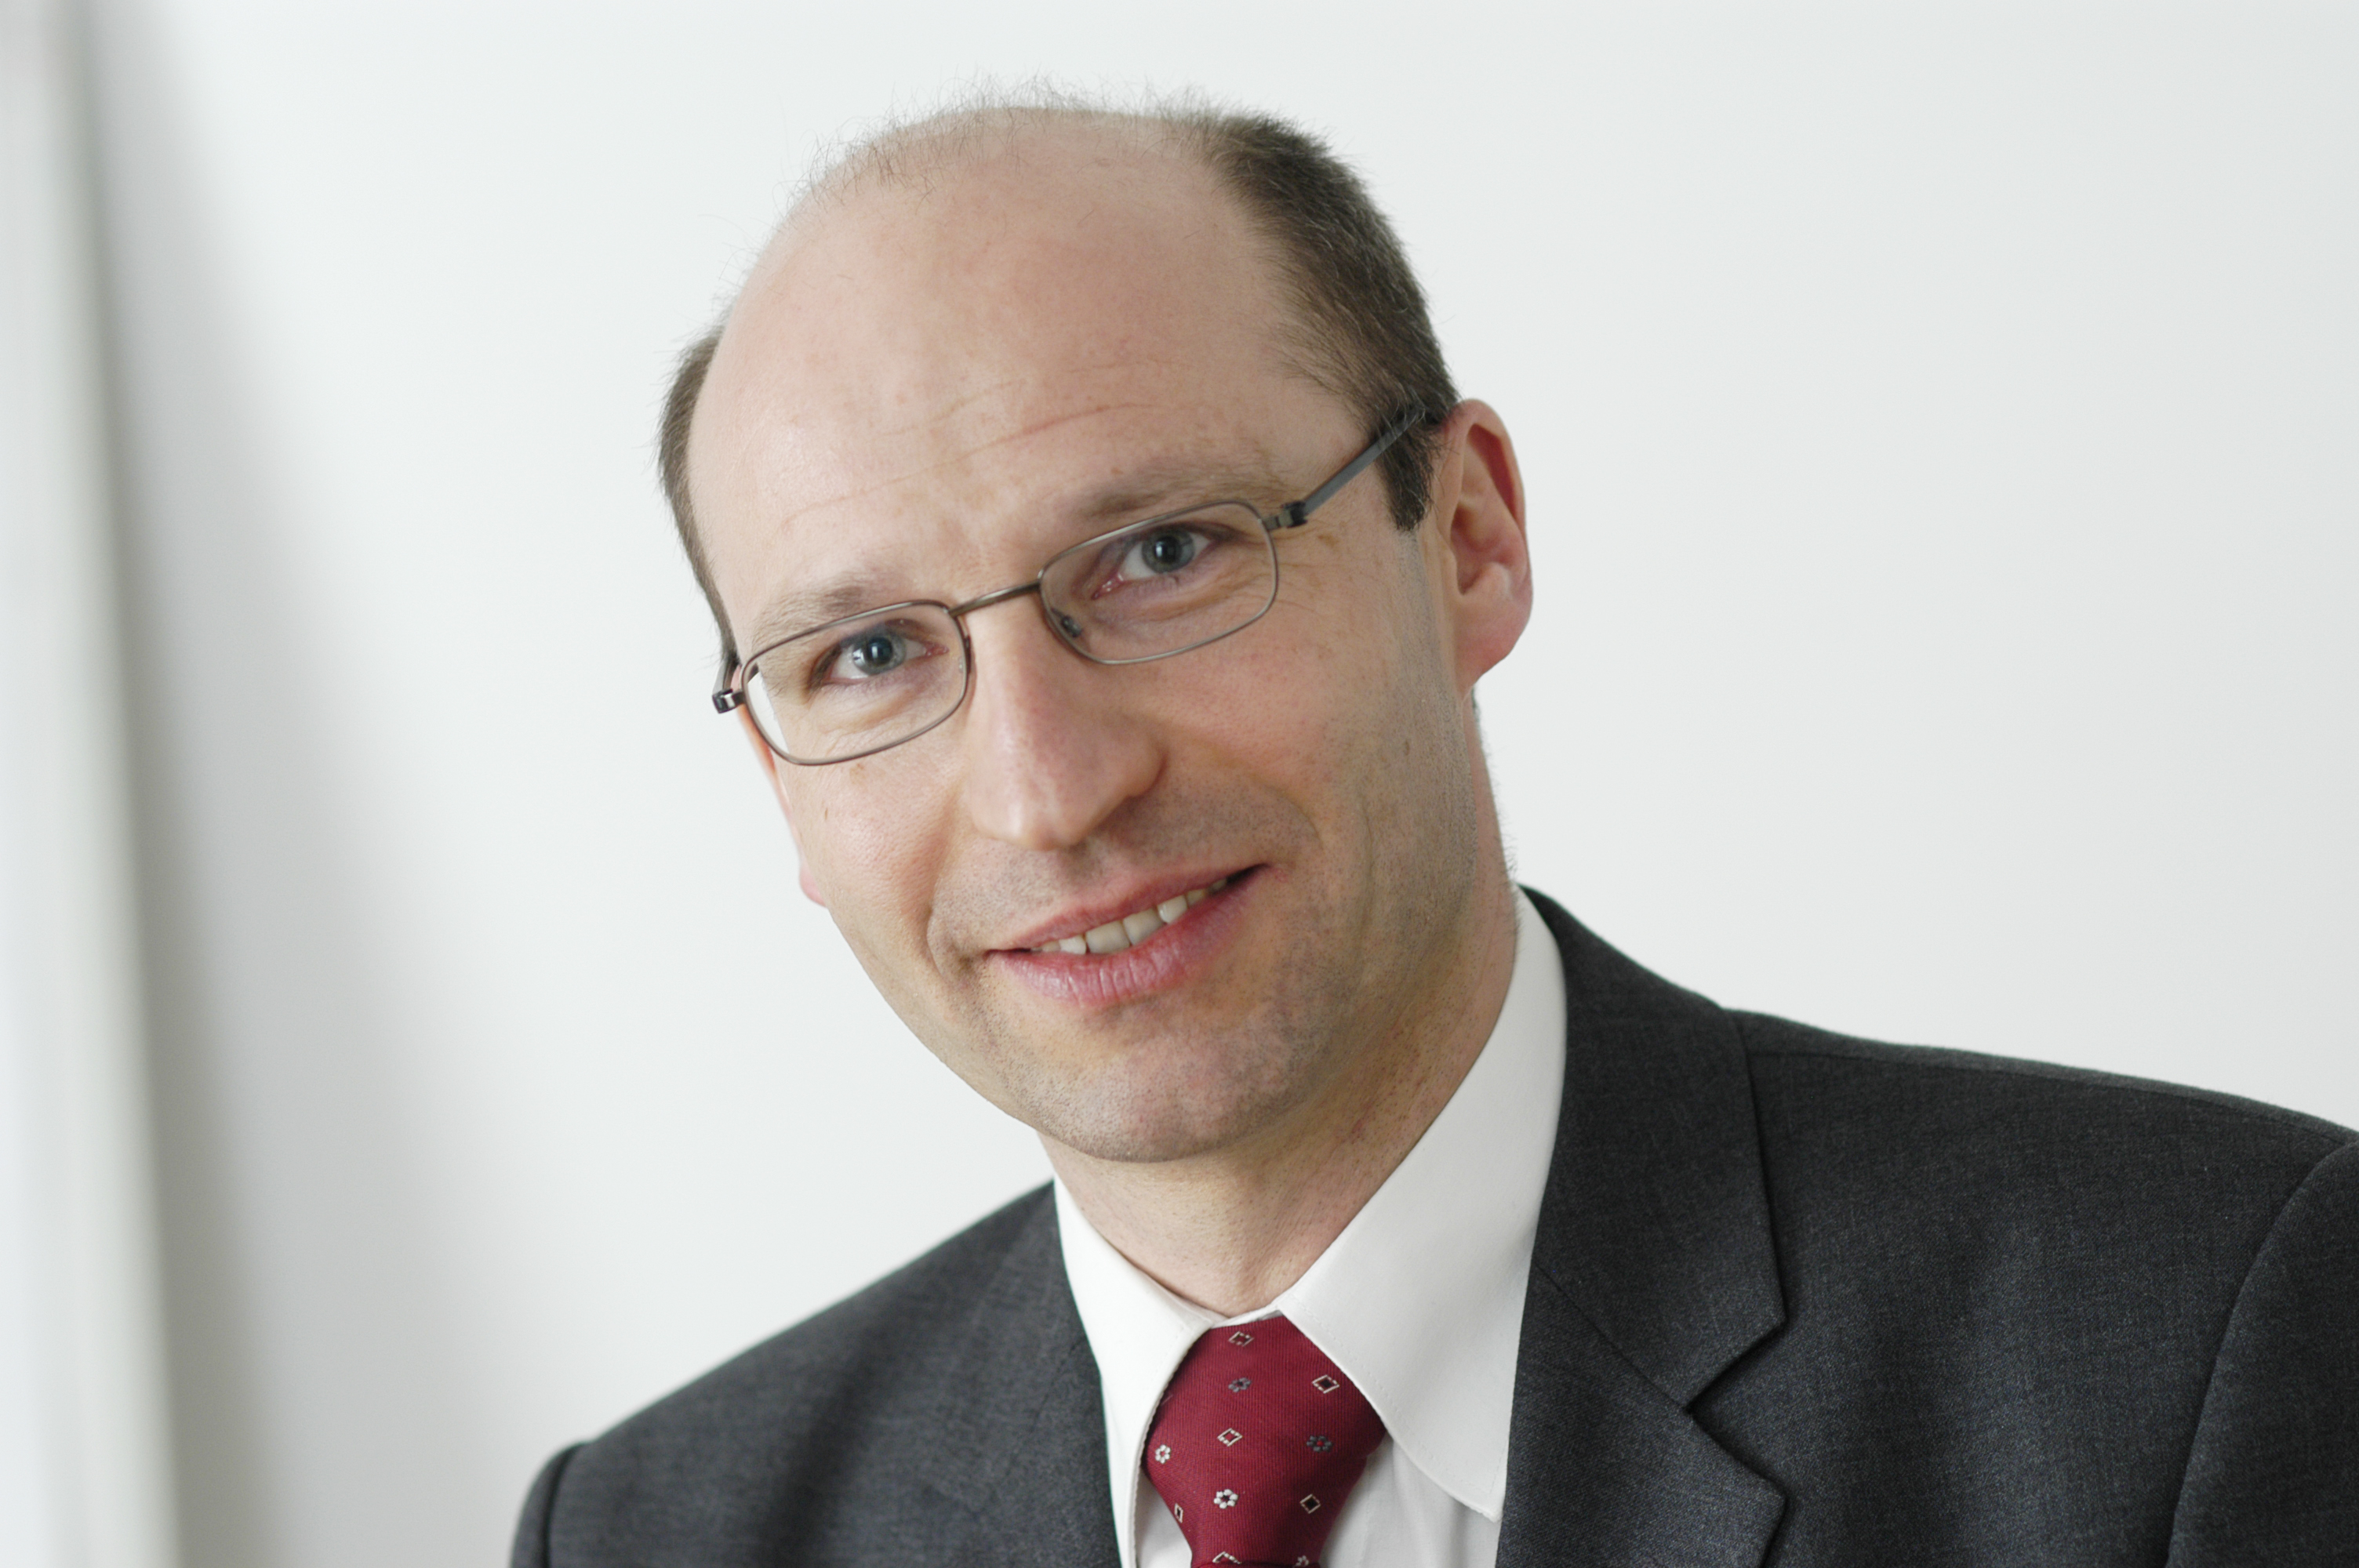 Bernd Hellgardt - CEO ComSol AG Commercial Solutions